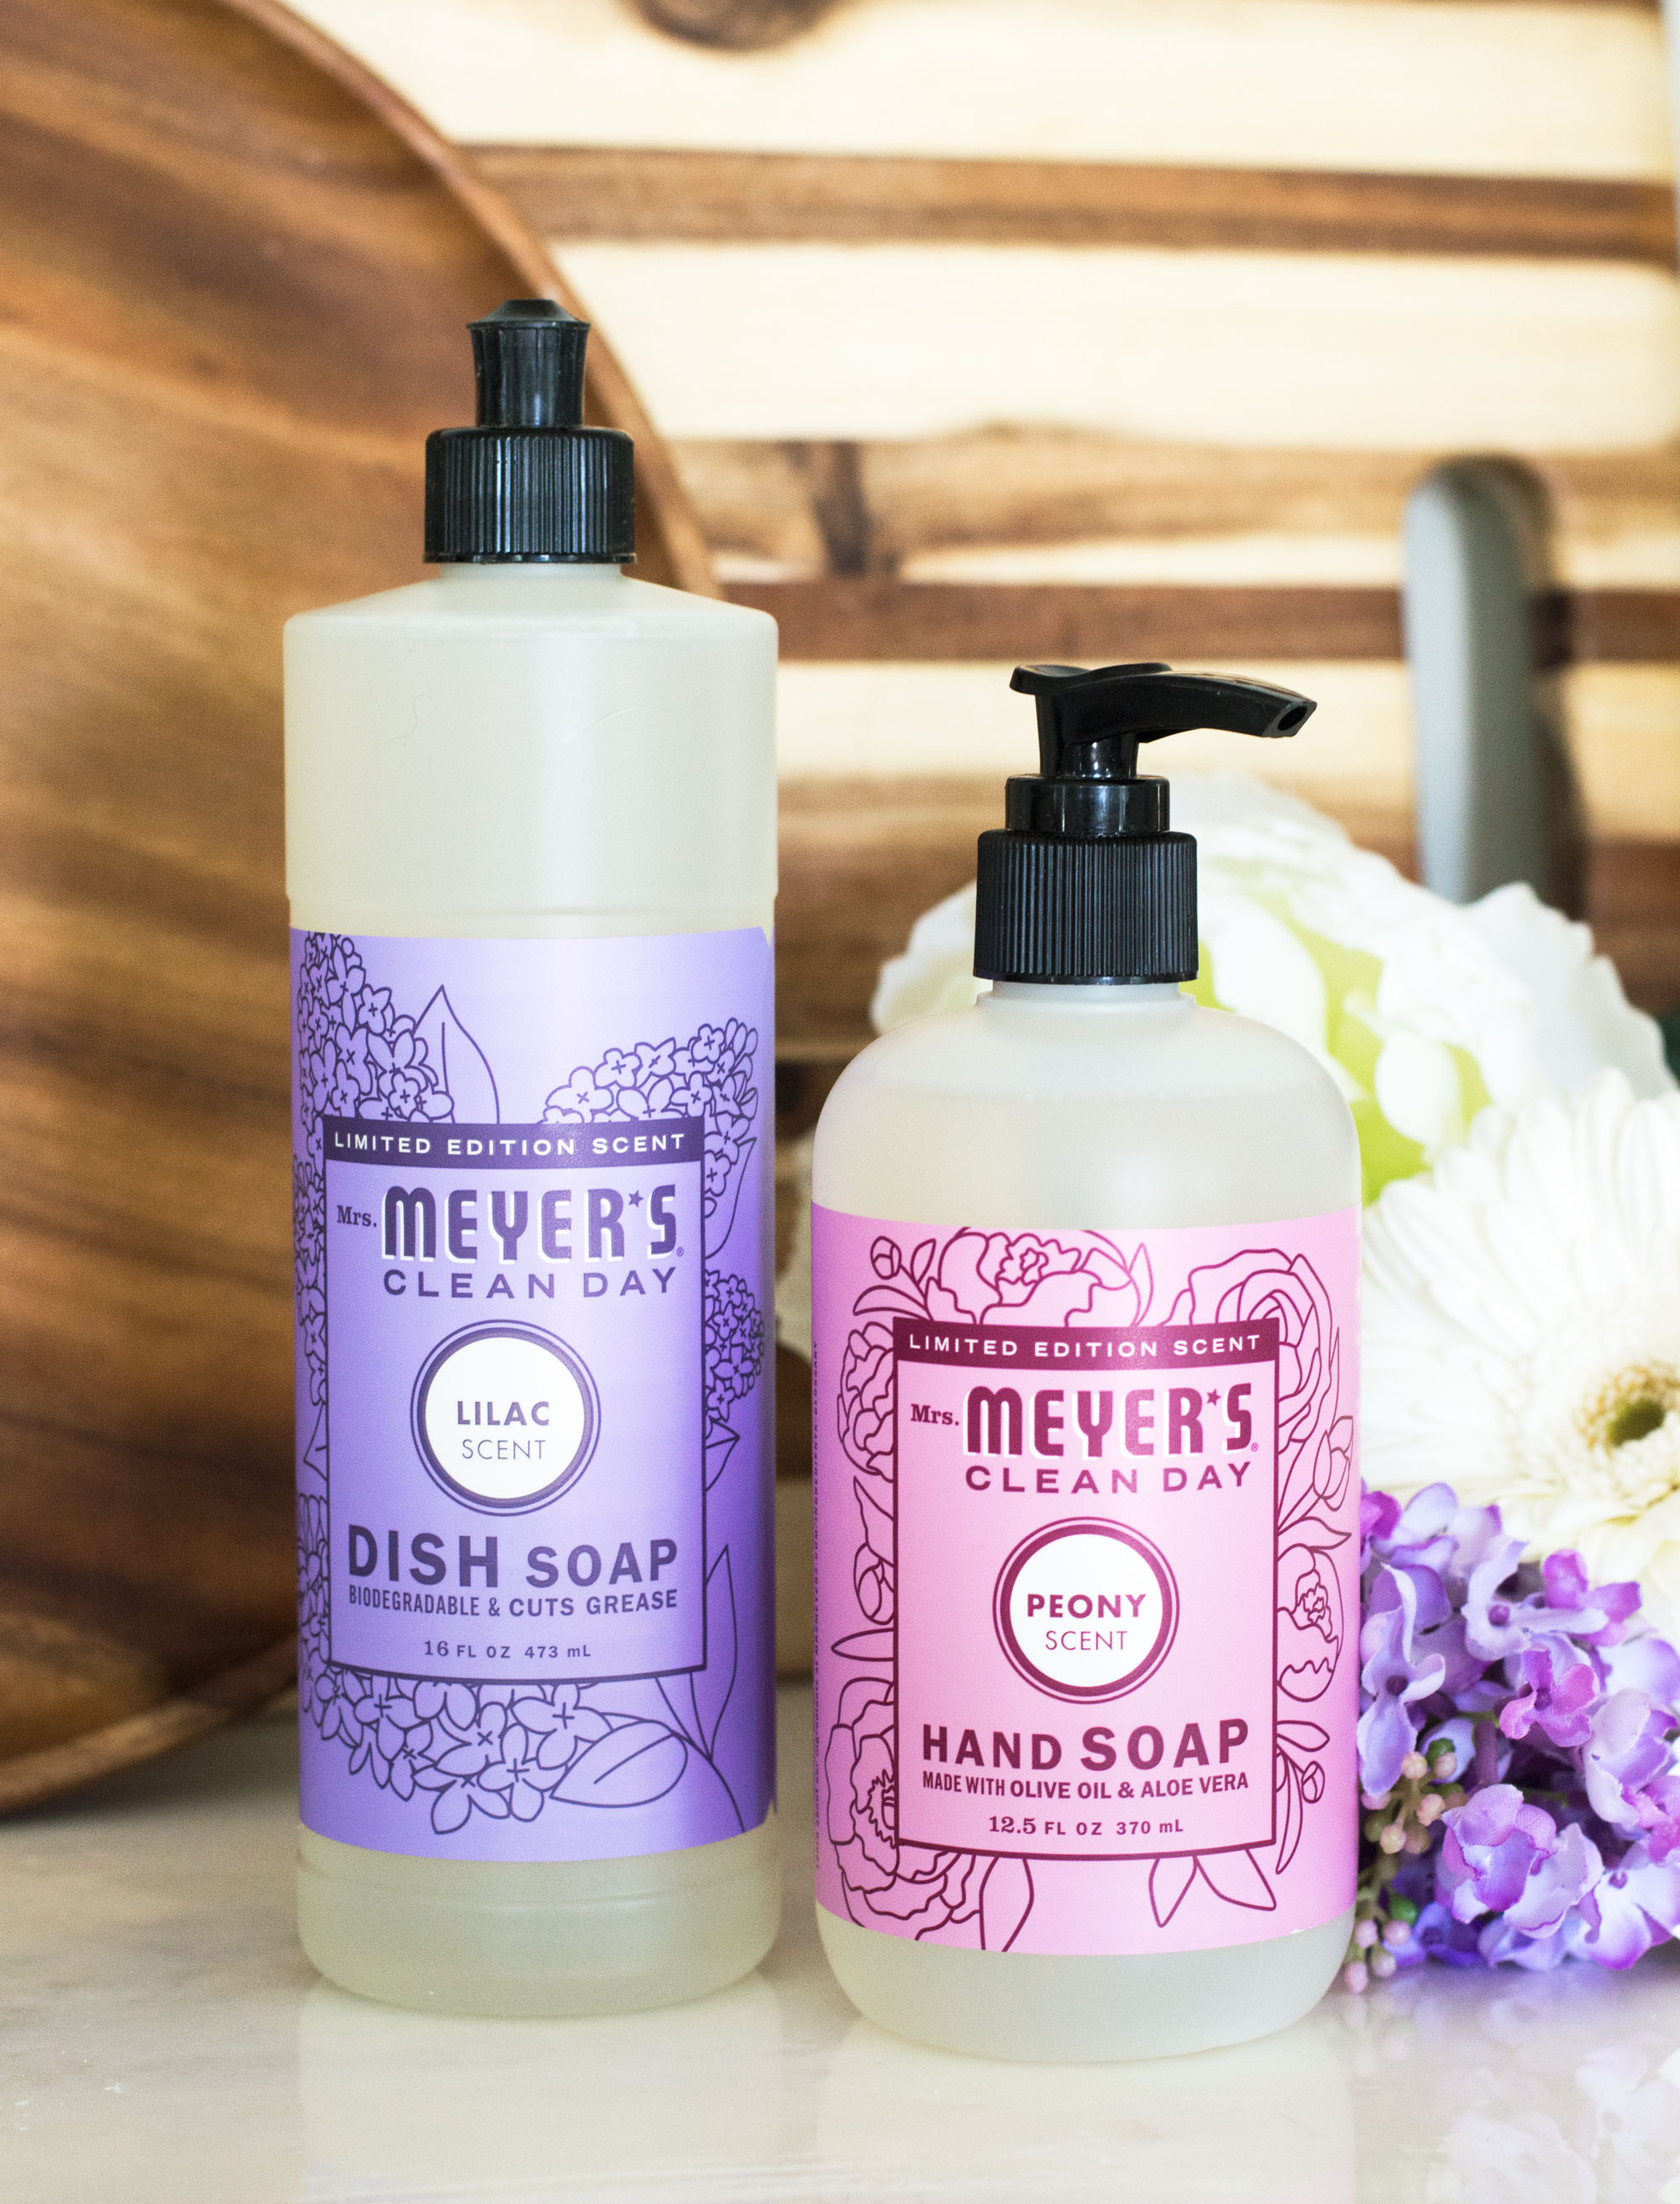 iu0027ve been using the mrs meyeru0027s products around my house for several weeks now and i am so excited to share my joy with you guys the freshness that these